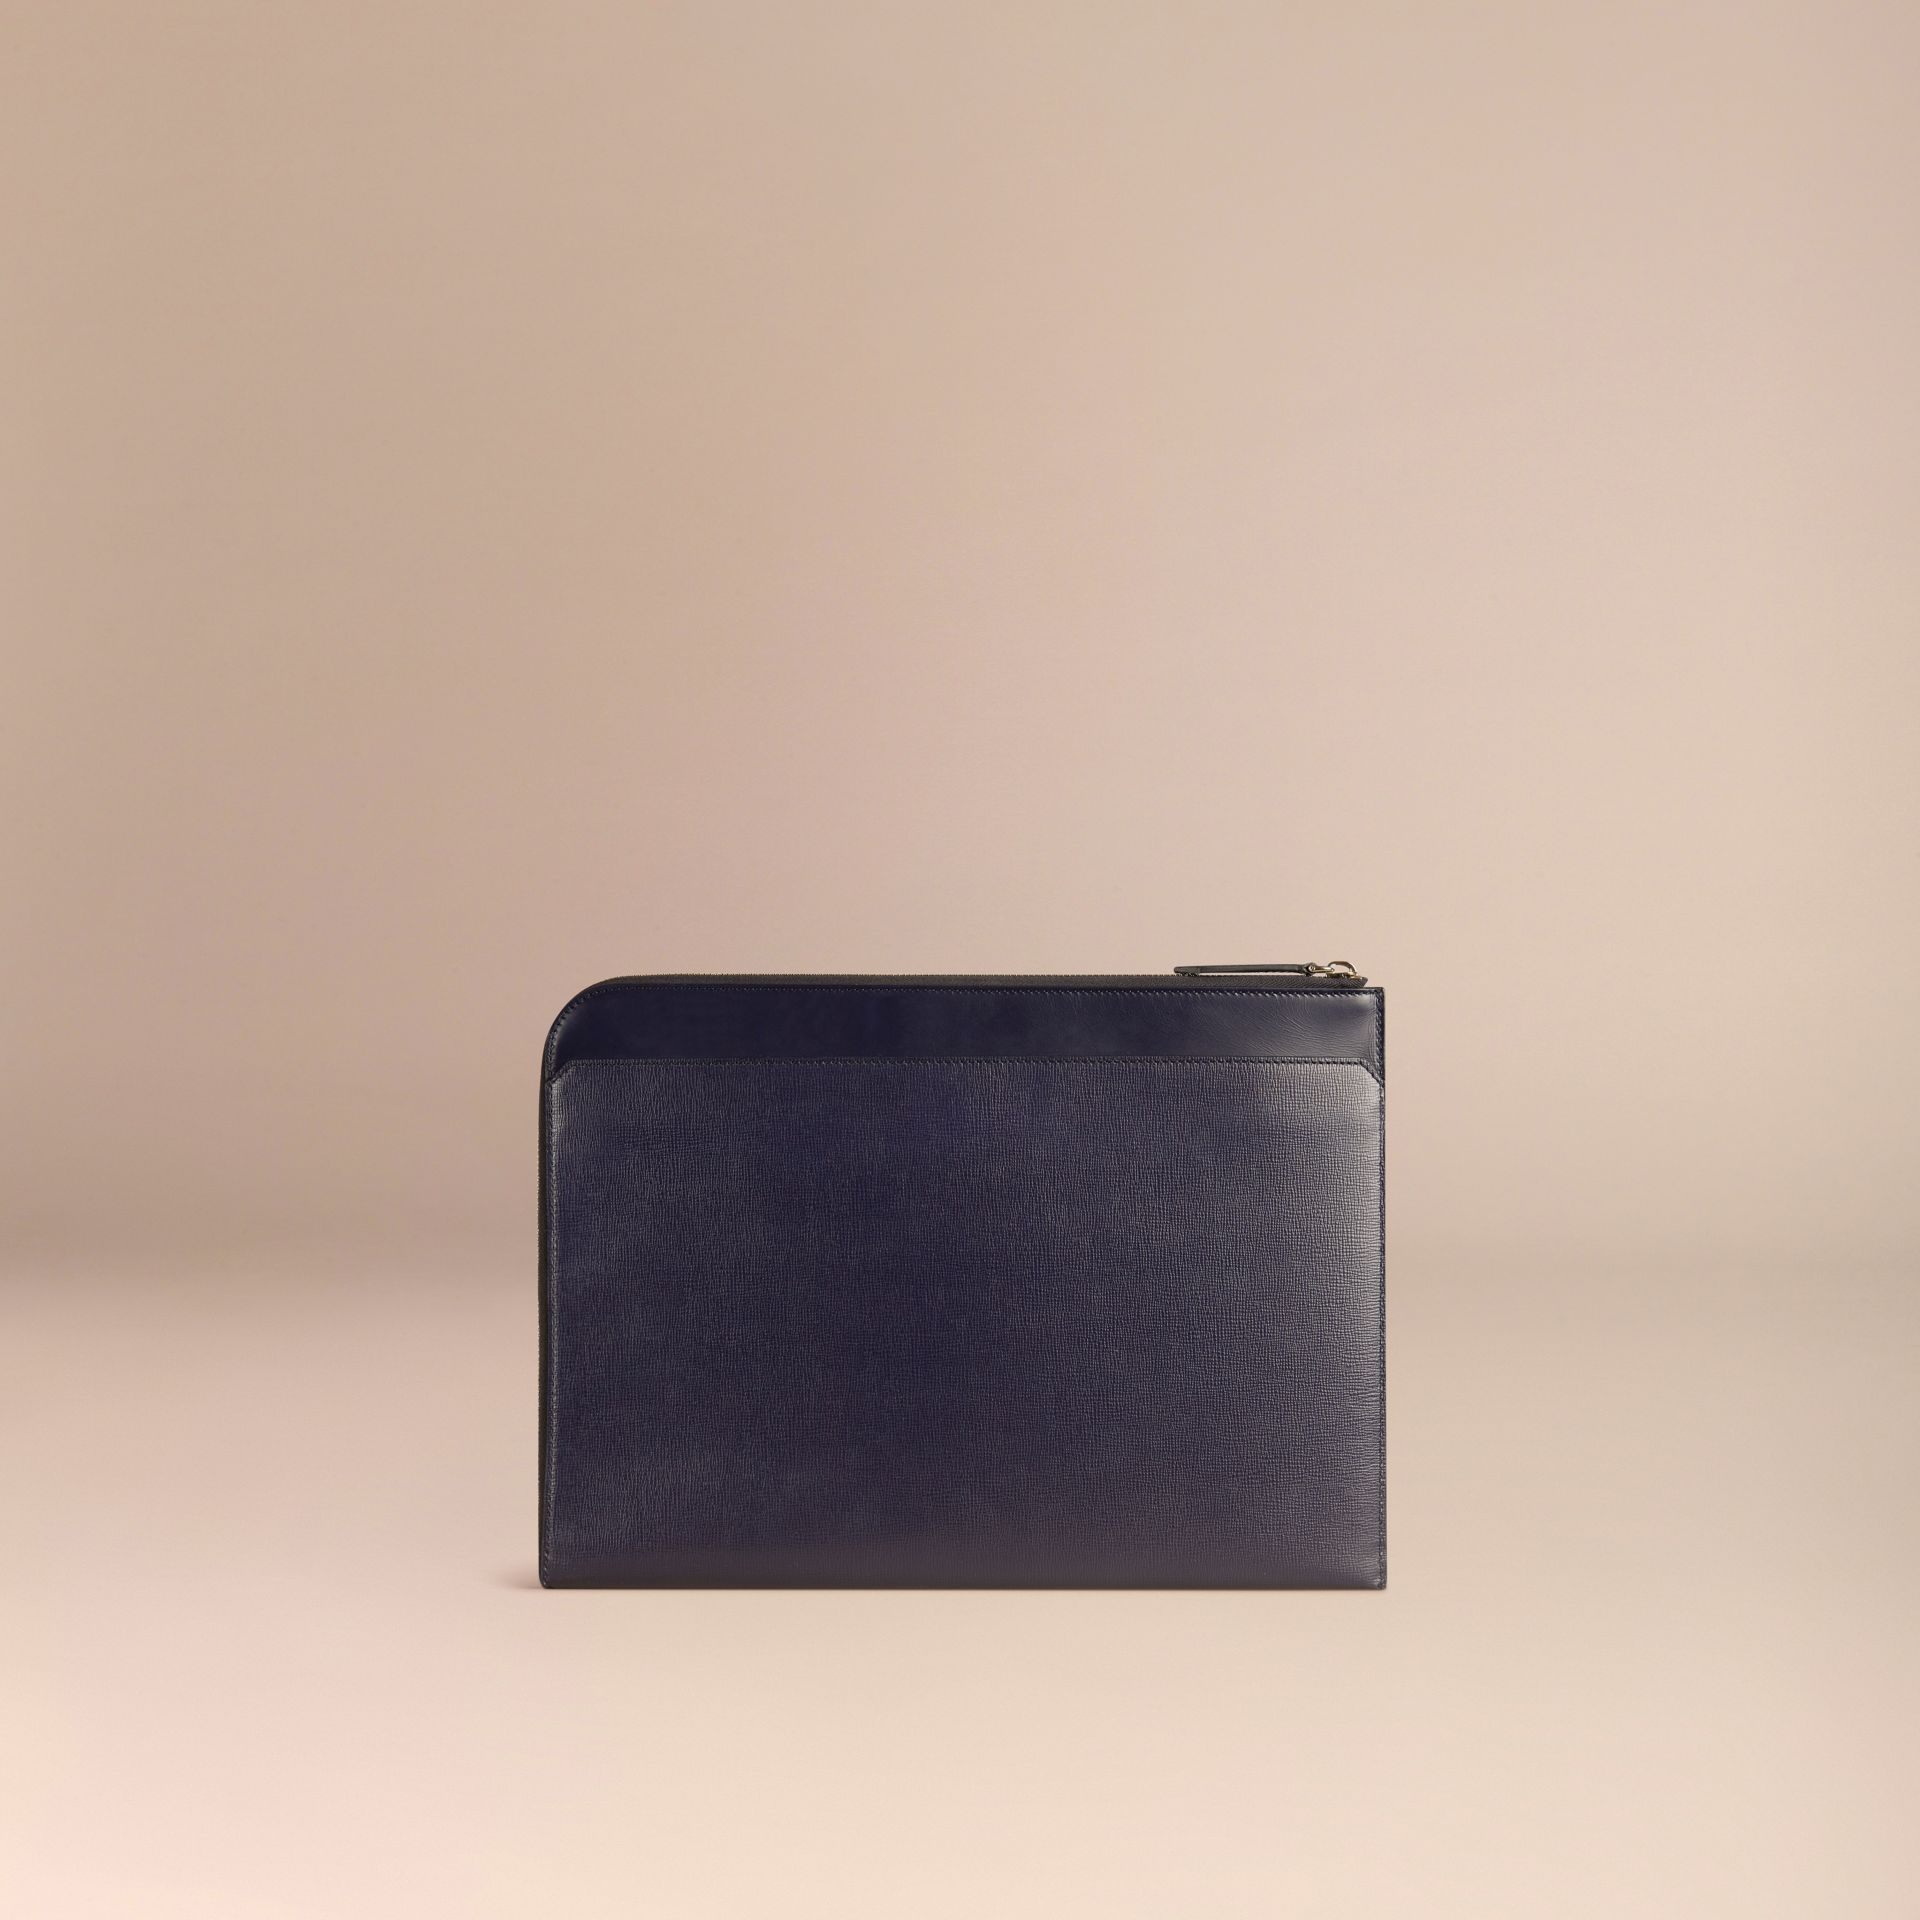 London Leather Document Case in Dark Navy - gallery image 4